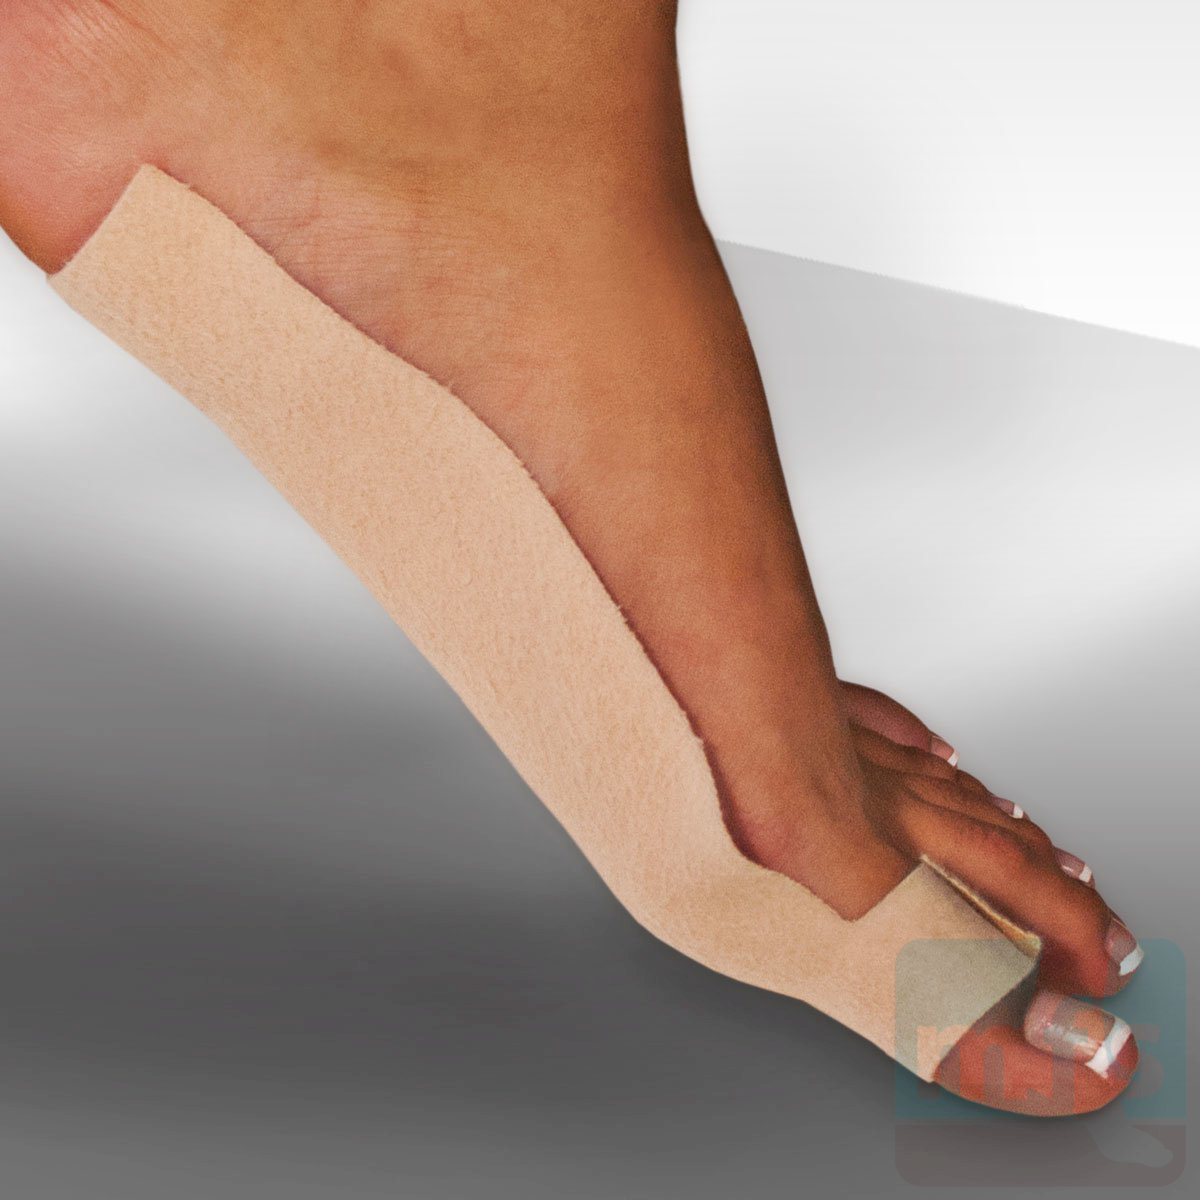 Natural Treatment For Turf Toe